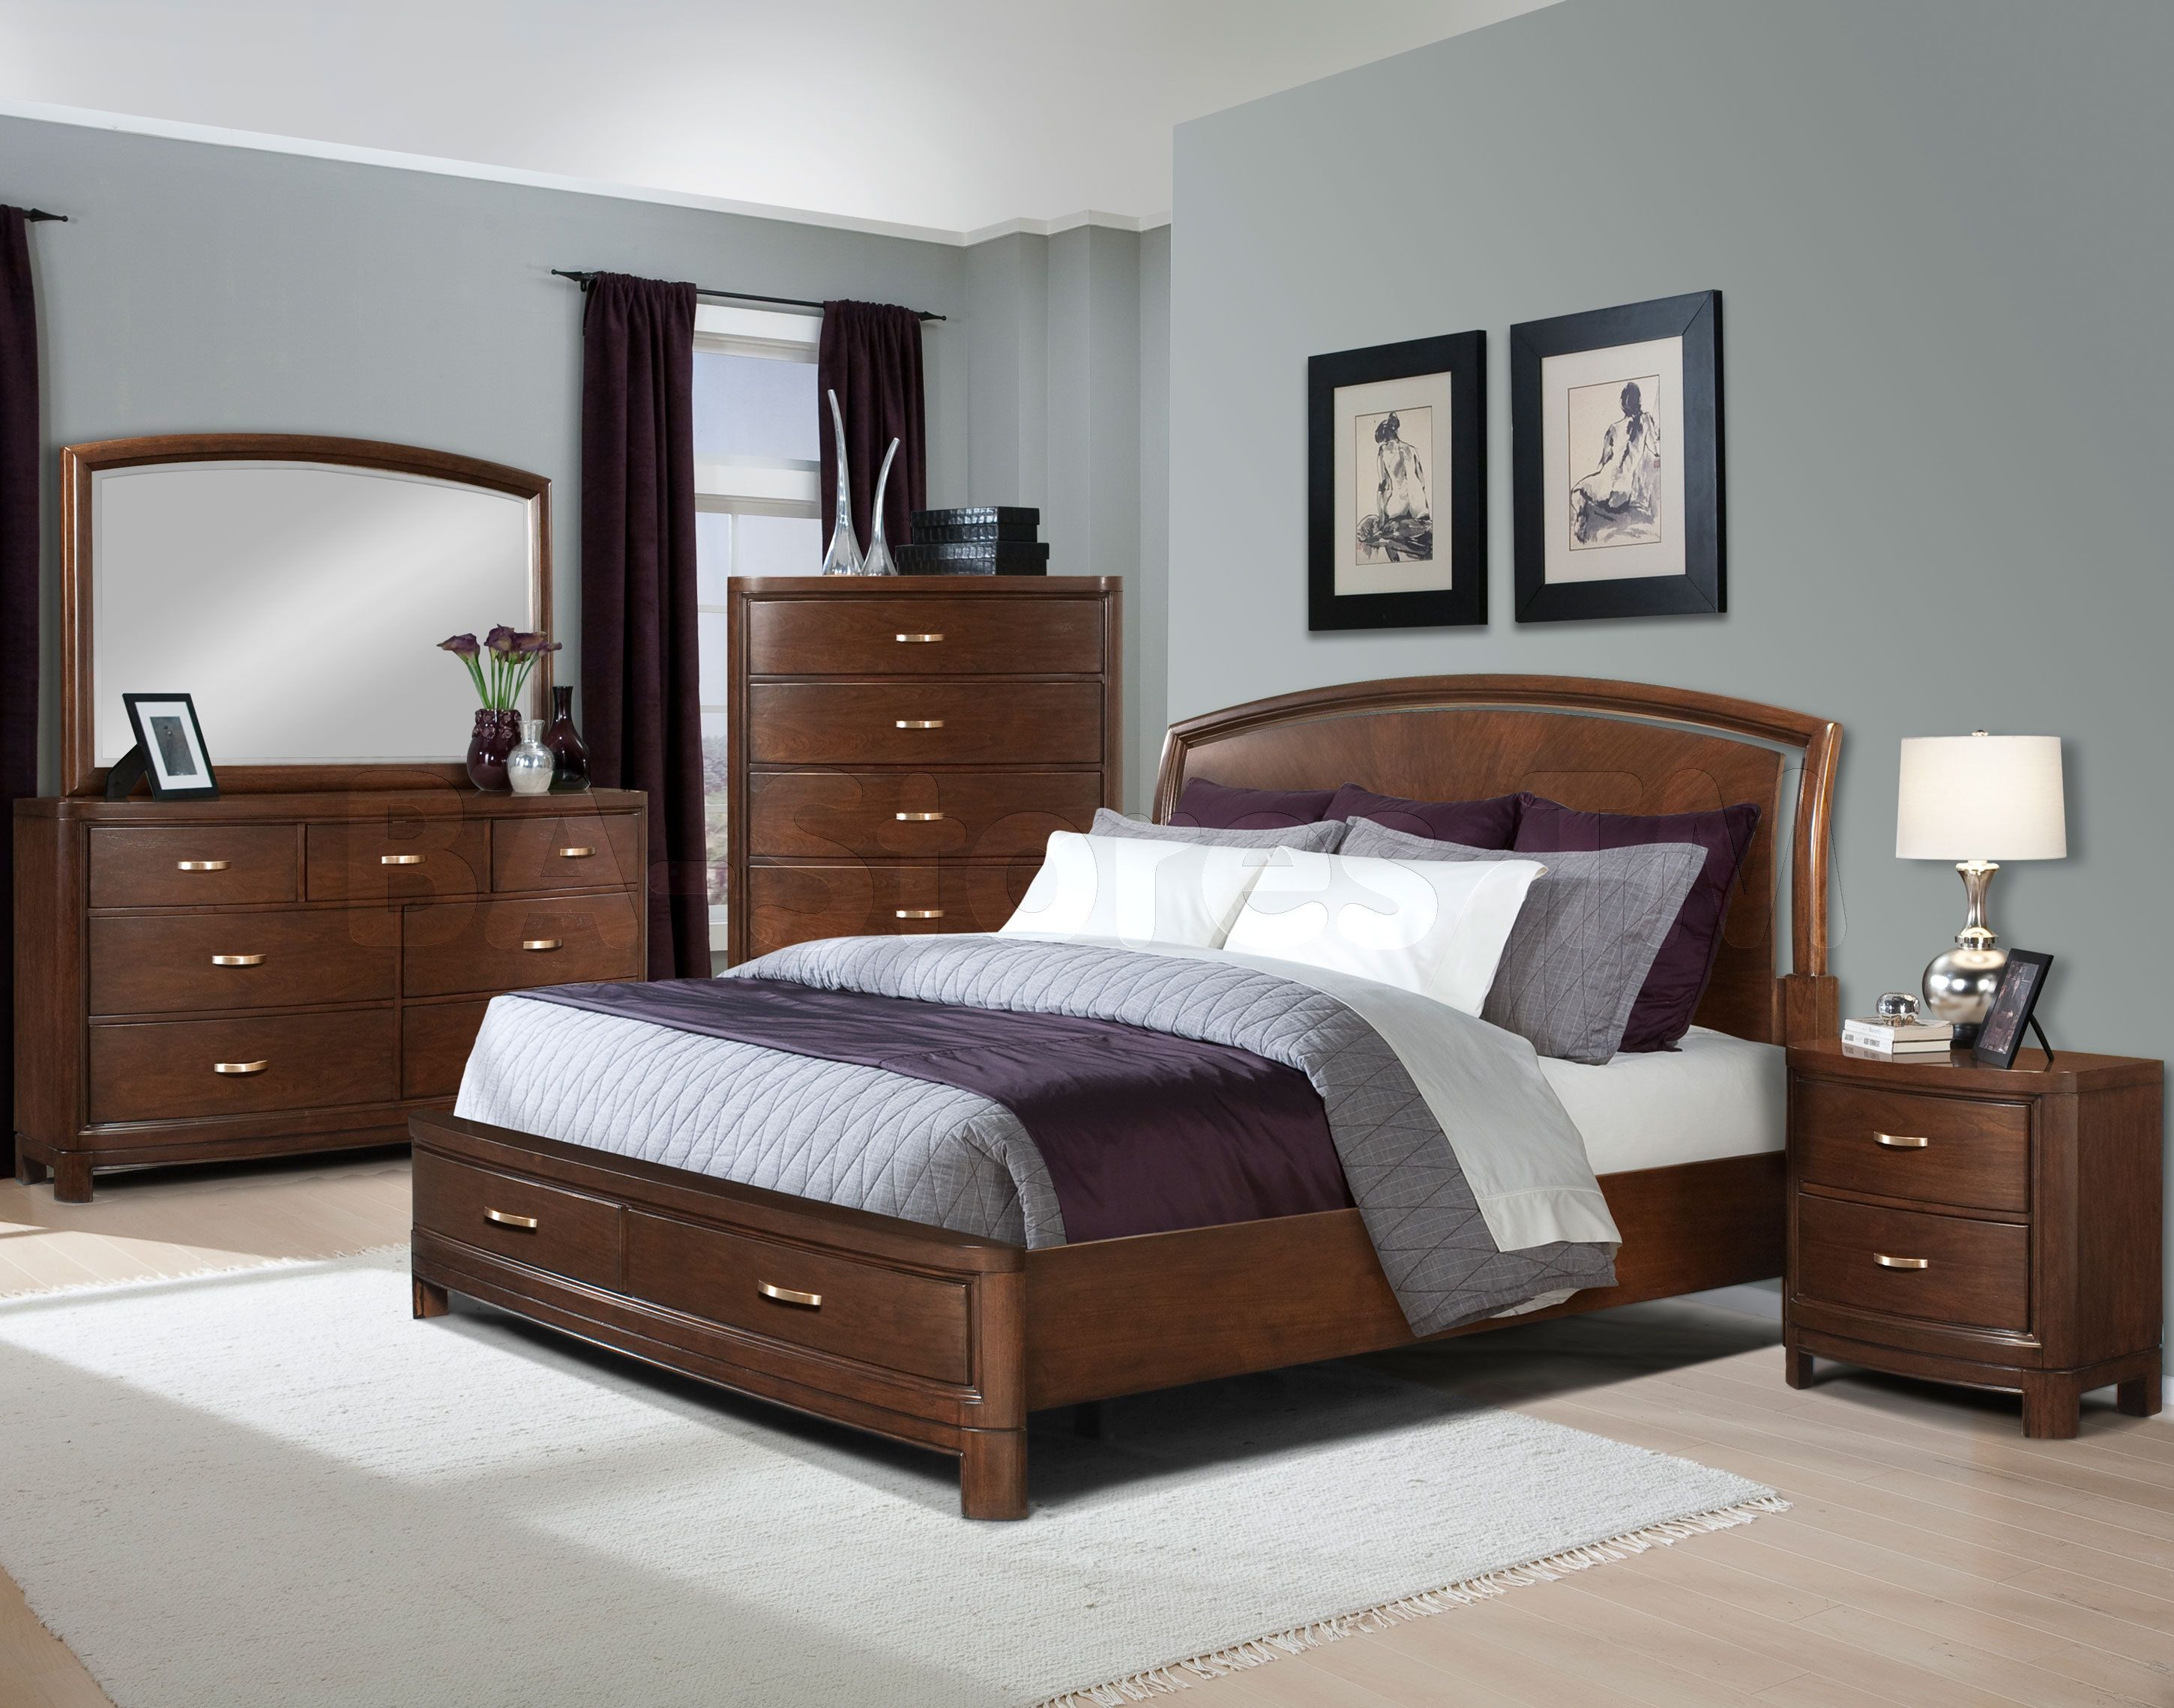 Contract Bedroom Furniture Style Images Design Inspiration